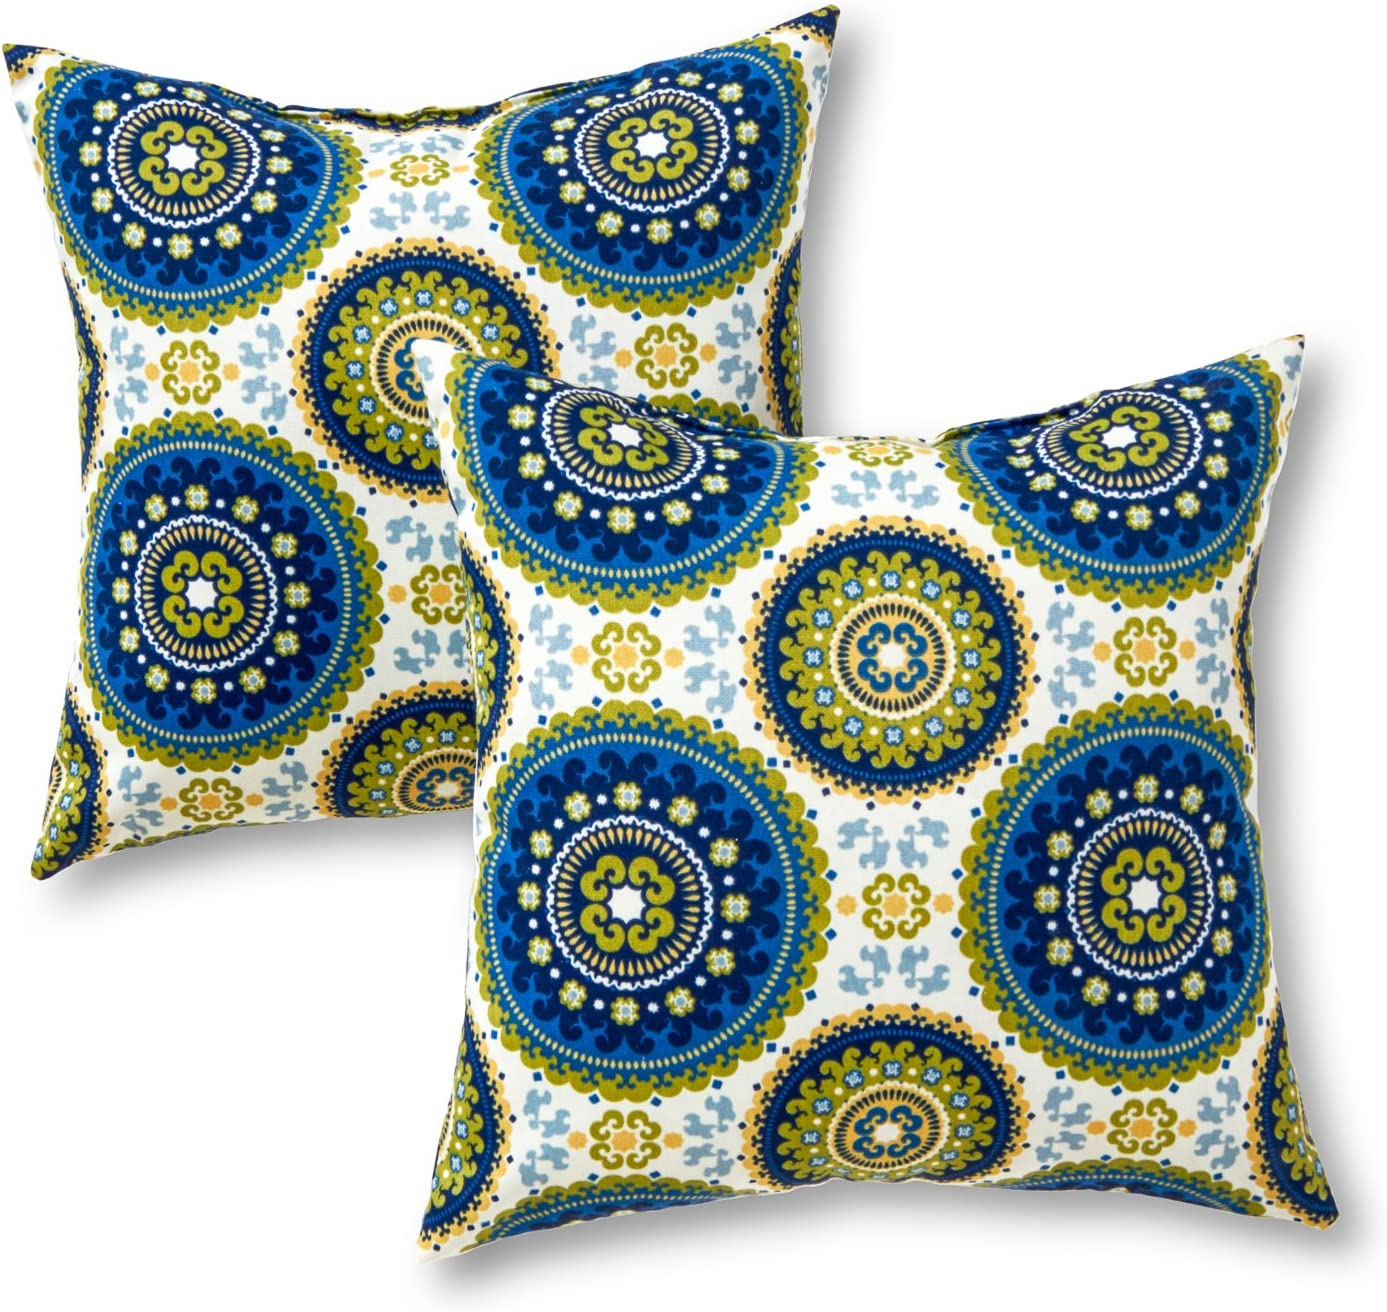 Amazon Com Greendale Home Fashions Outdoor Accent Pillows Summer Set Of 2 Garden Outdoor